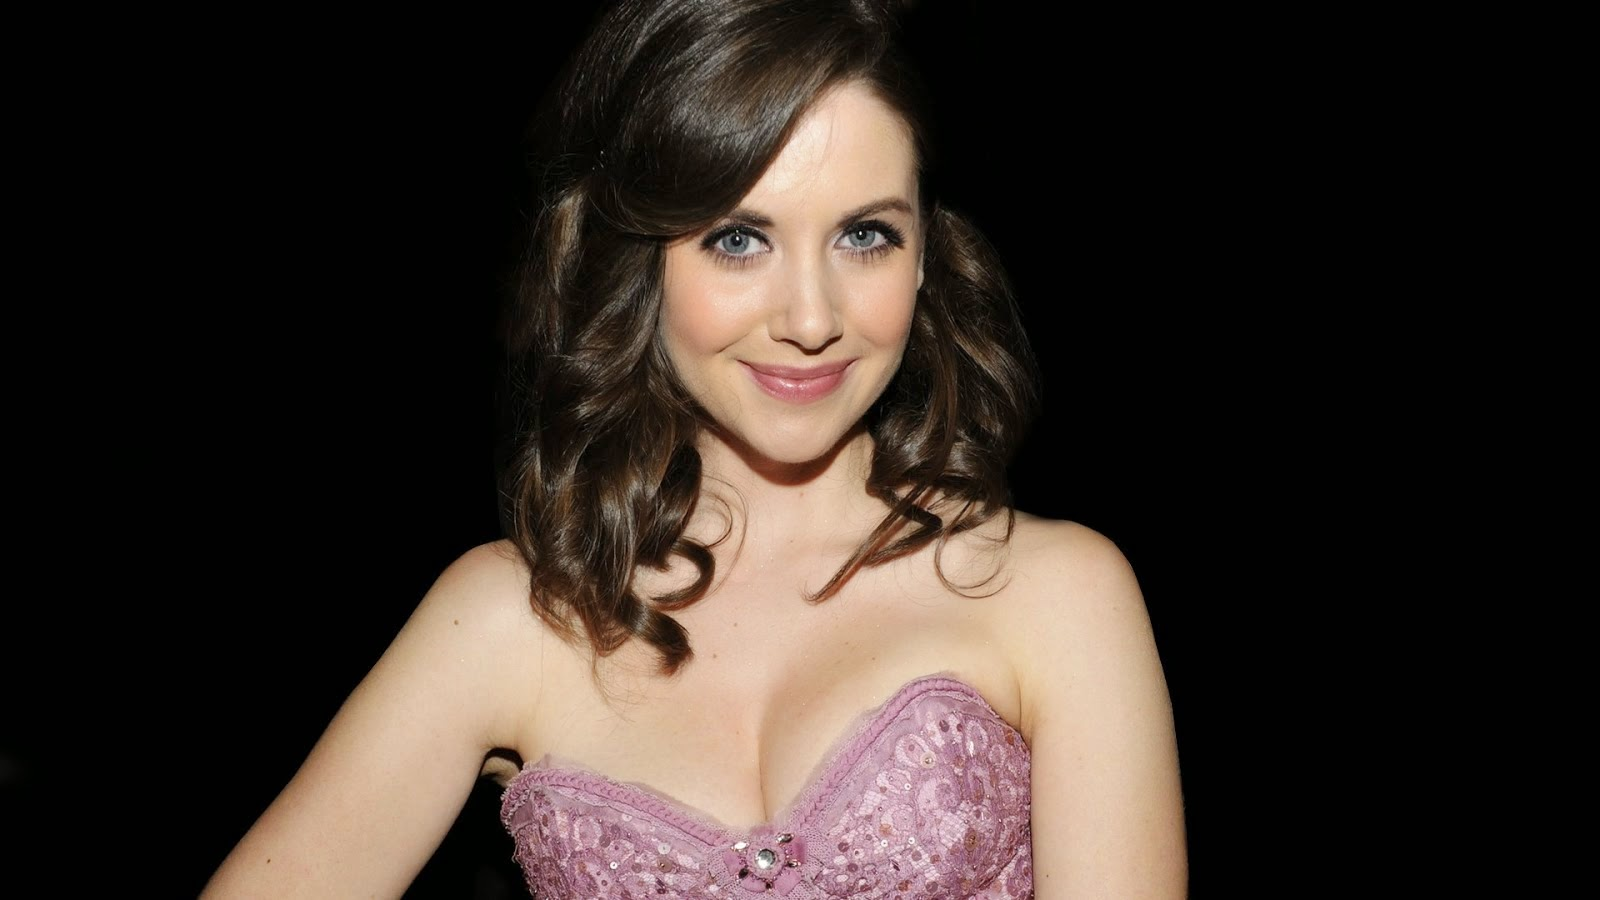 Alison Brie HD Wallpapers | HD Wallpapers | Download Free ...